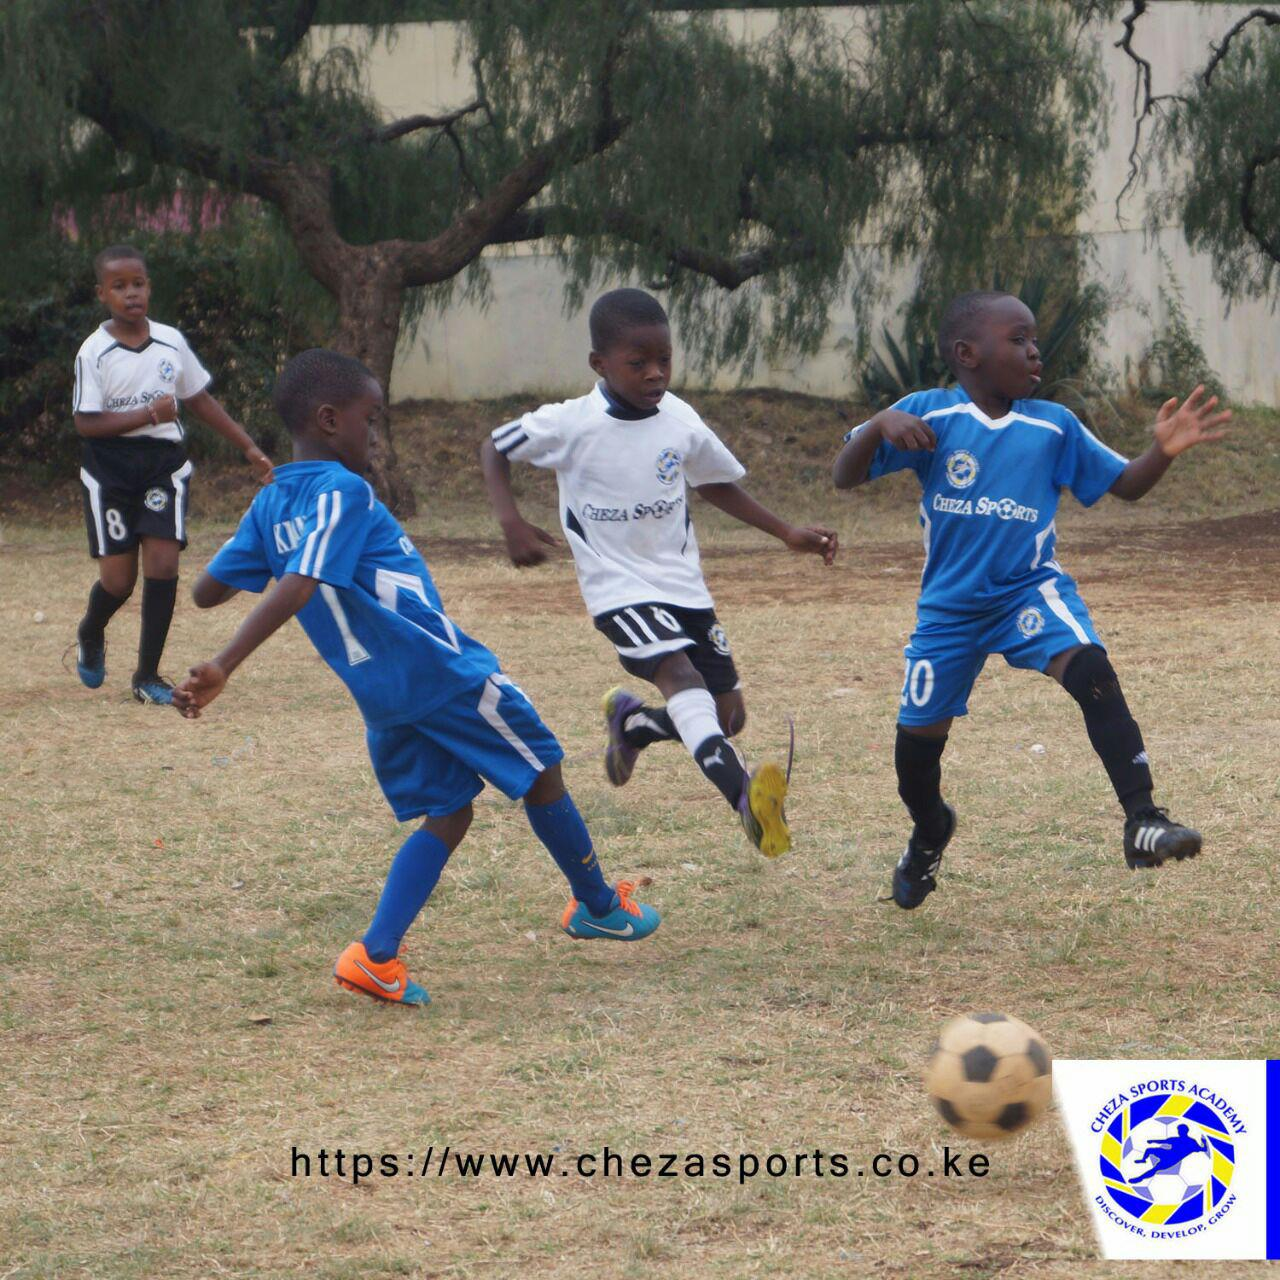 Top Sports Academies in Kenya| Kenya Sports Academies Directory